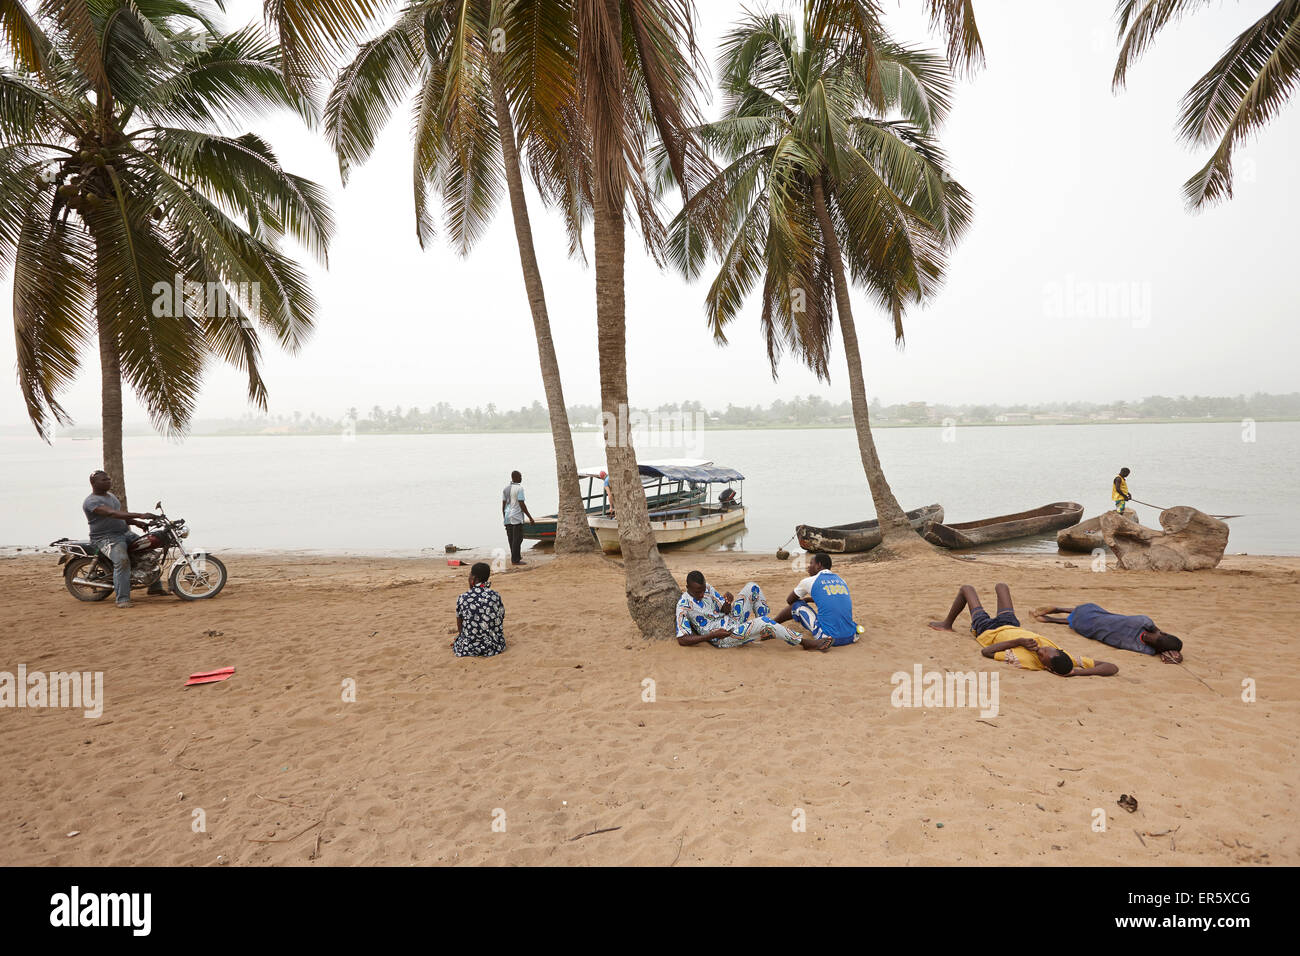 Boats at the Mono riverbank, Grand-Popo, Mono Department, Benin - Stock Image